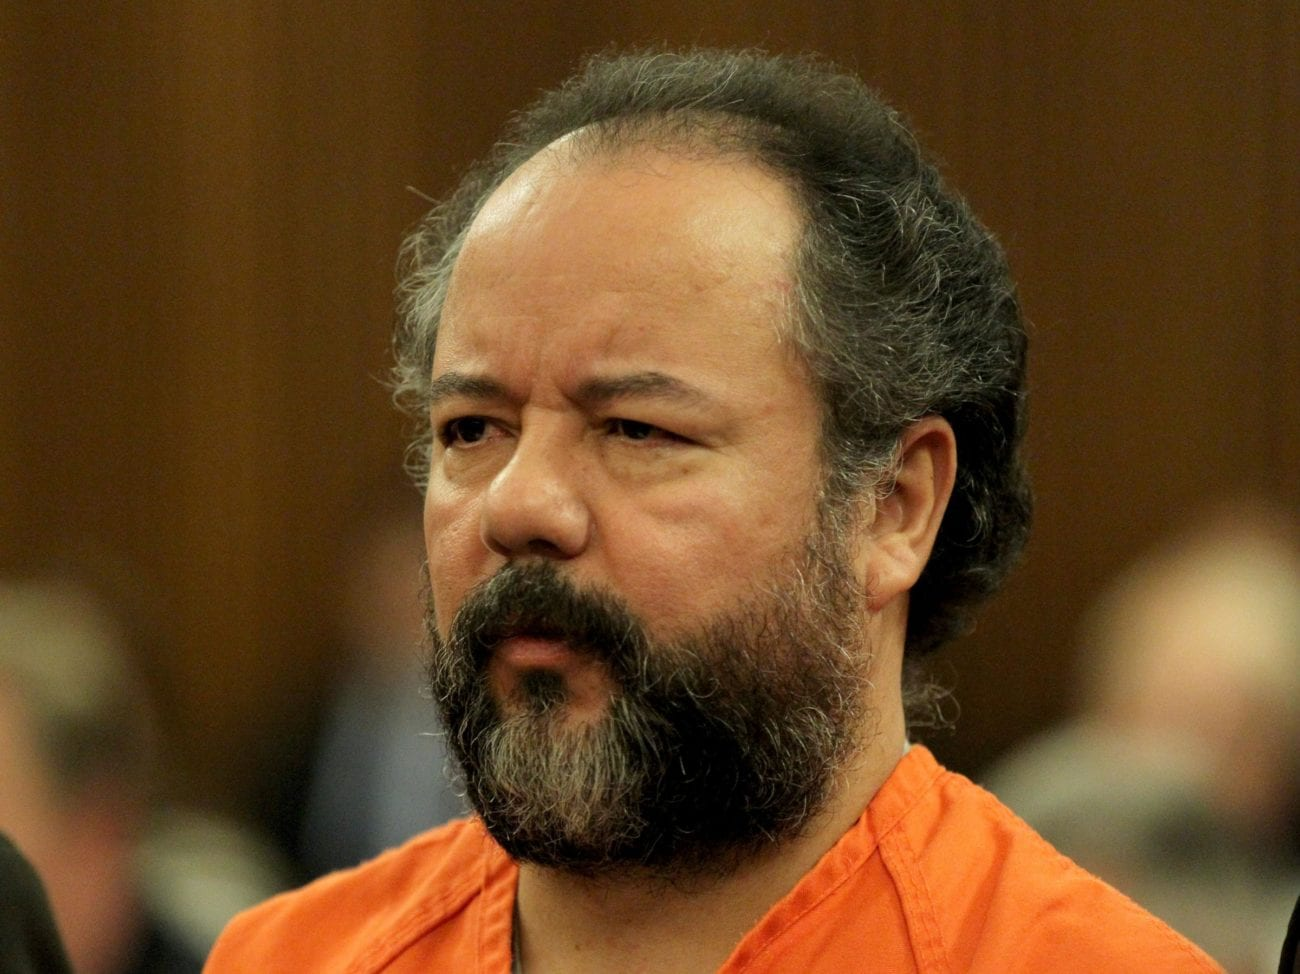 Ariel Castro's victims never imagined a baby girl would lead to their eventual escape in 2013, after over a decade in captivity being tortured & raped.